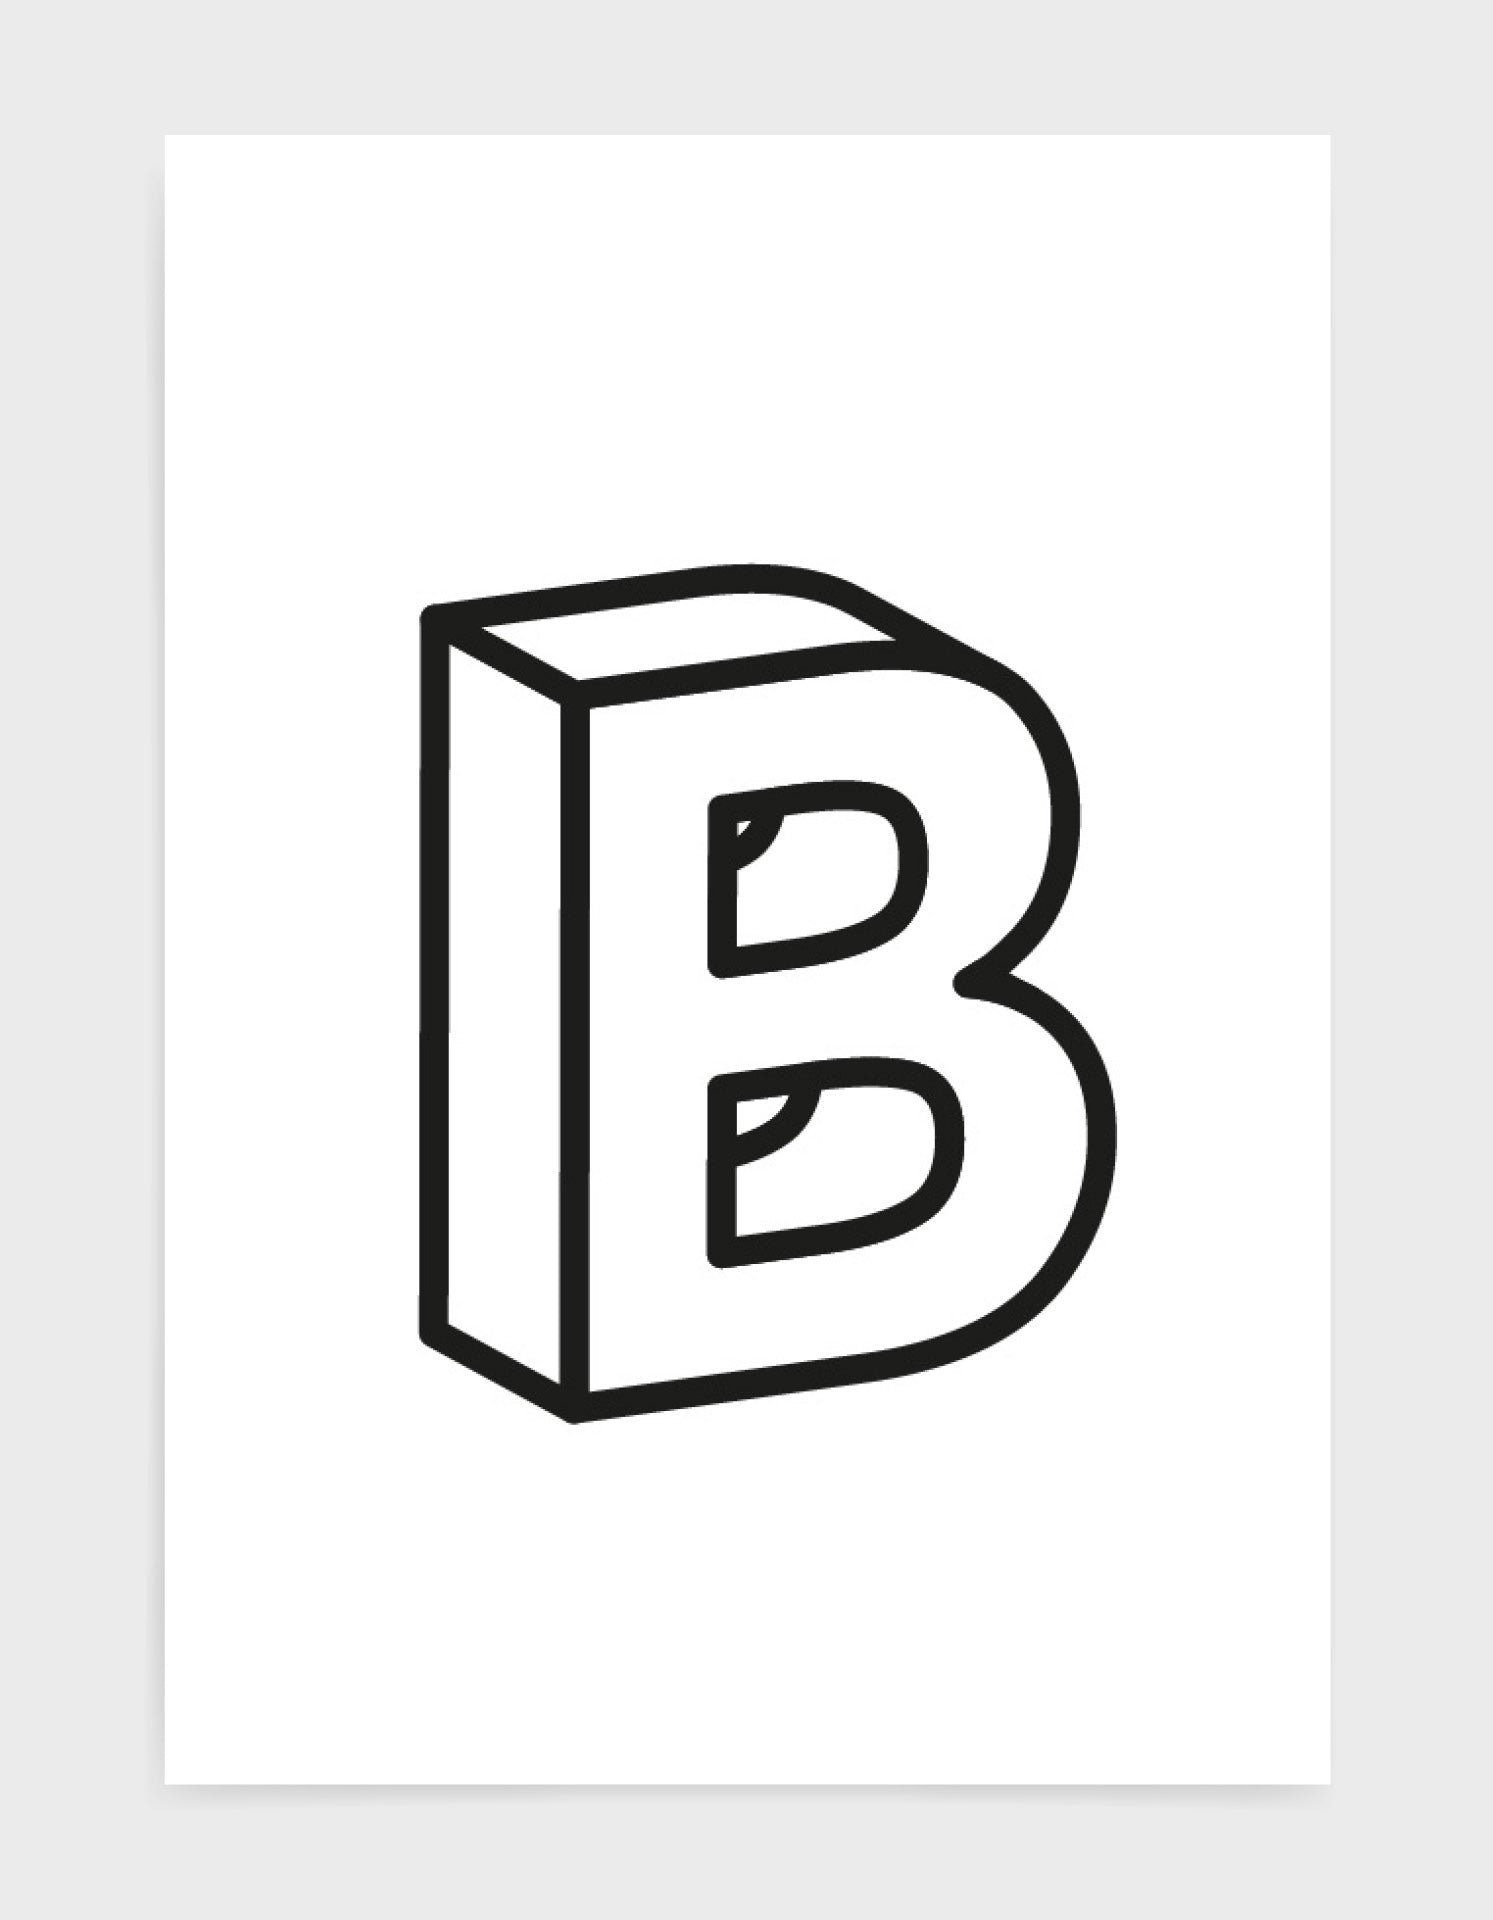 monochrome typography alphabet print depicting the letter B in 3D black type